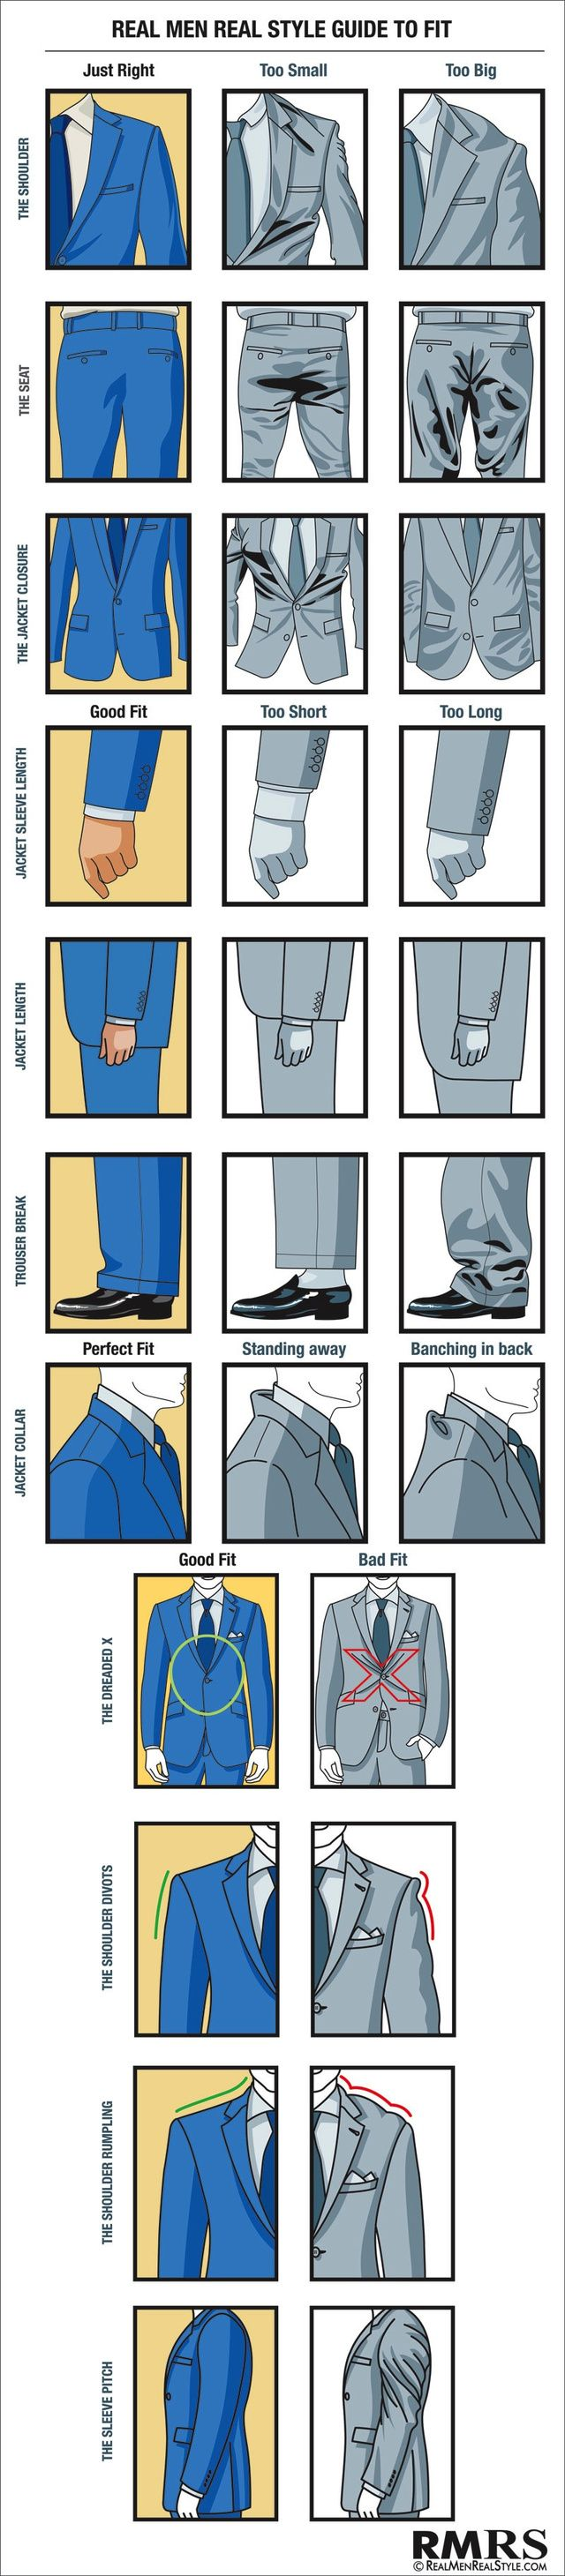 This Visual Guide Outlines How Men's Suits Should Fit